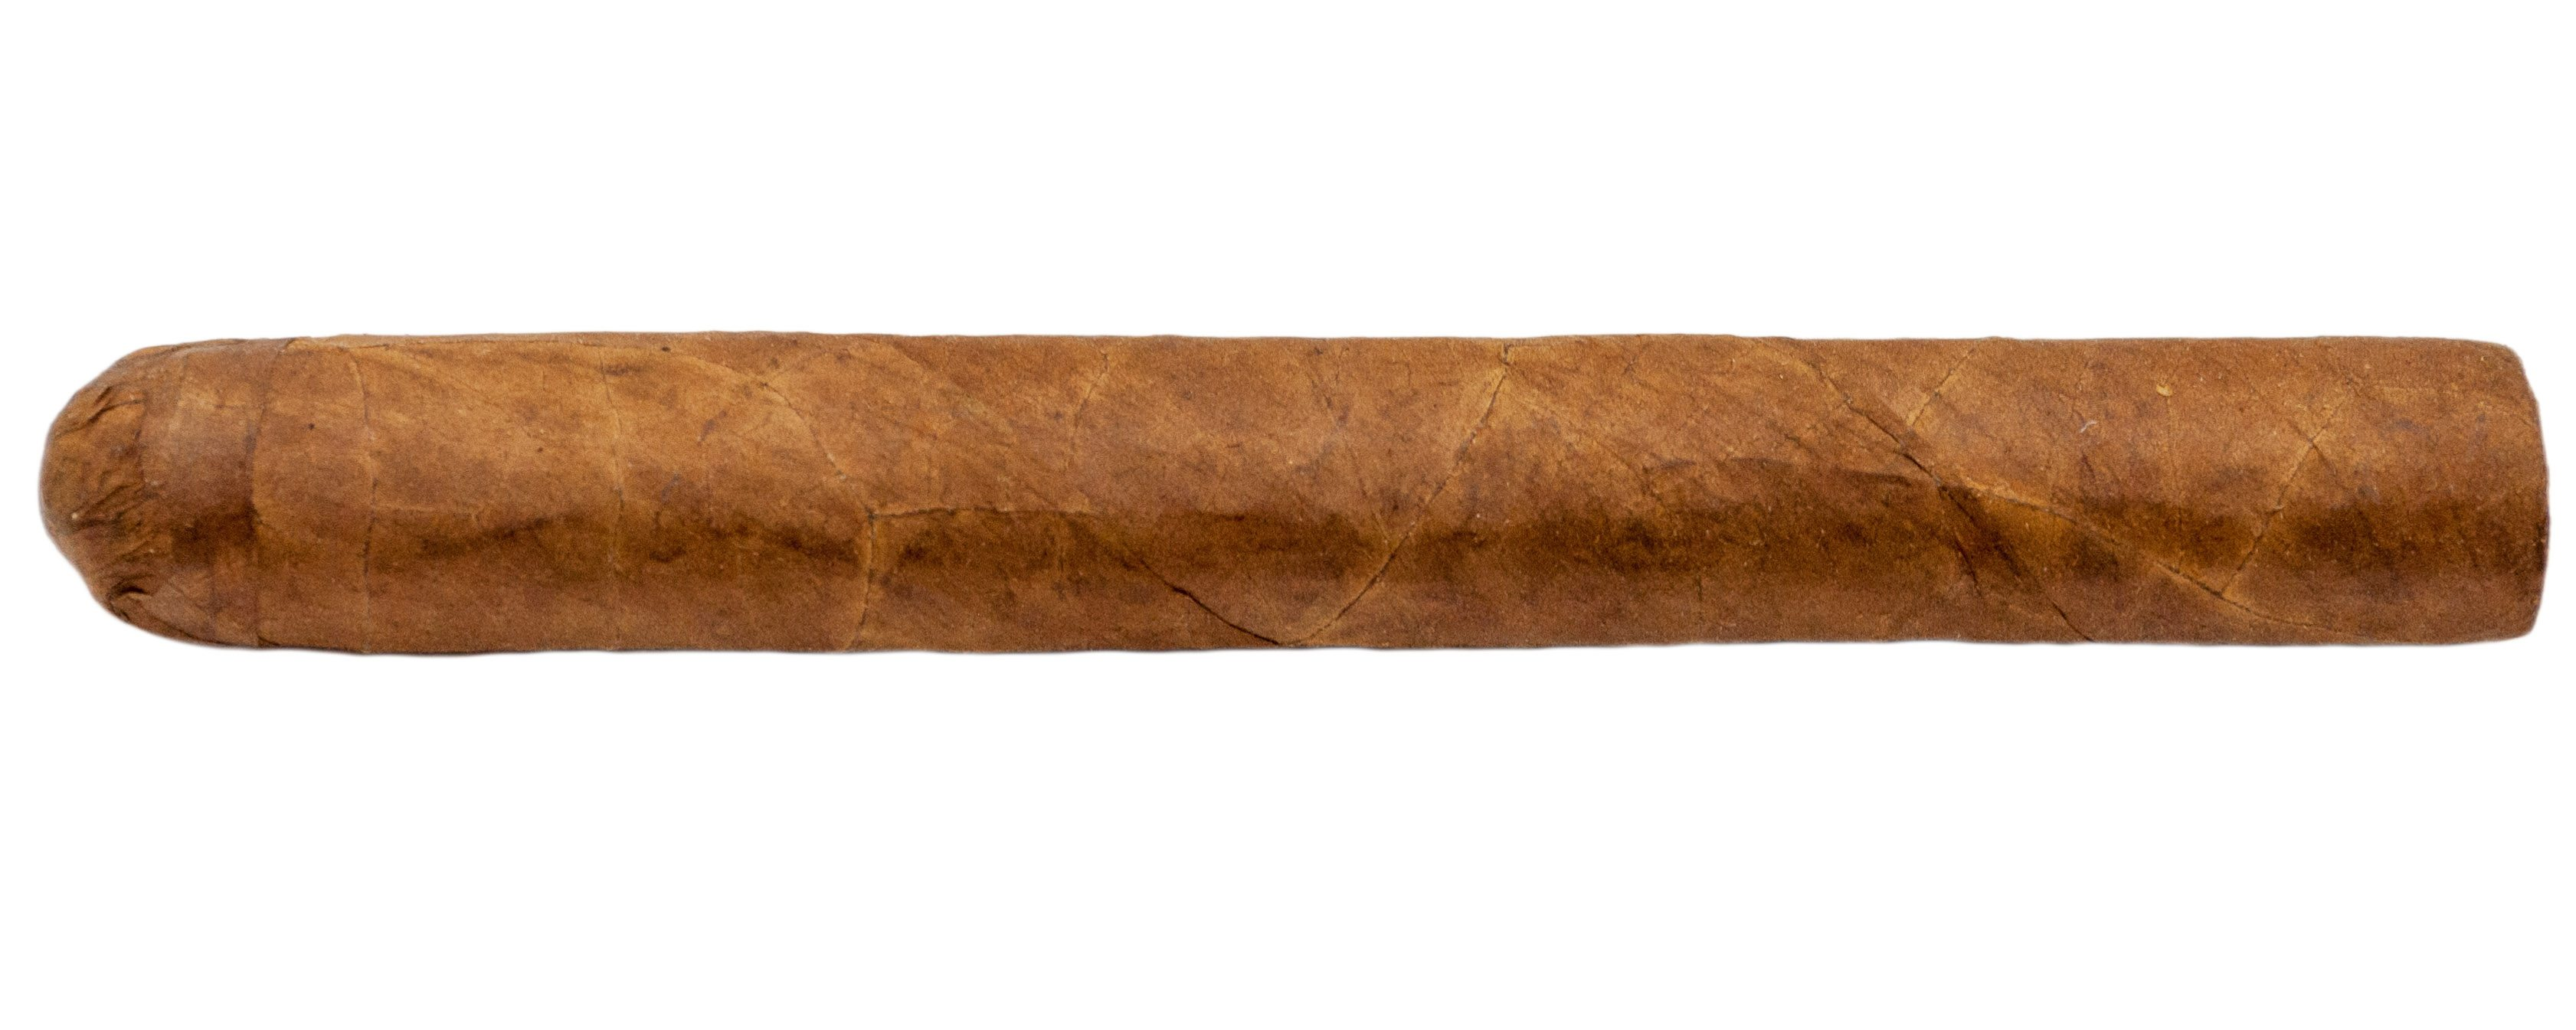 Blind Cigar Review: Home Roll | DBL Press No. 1157